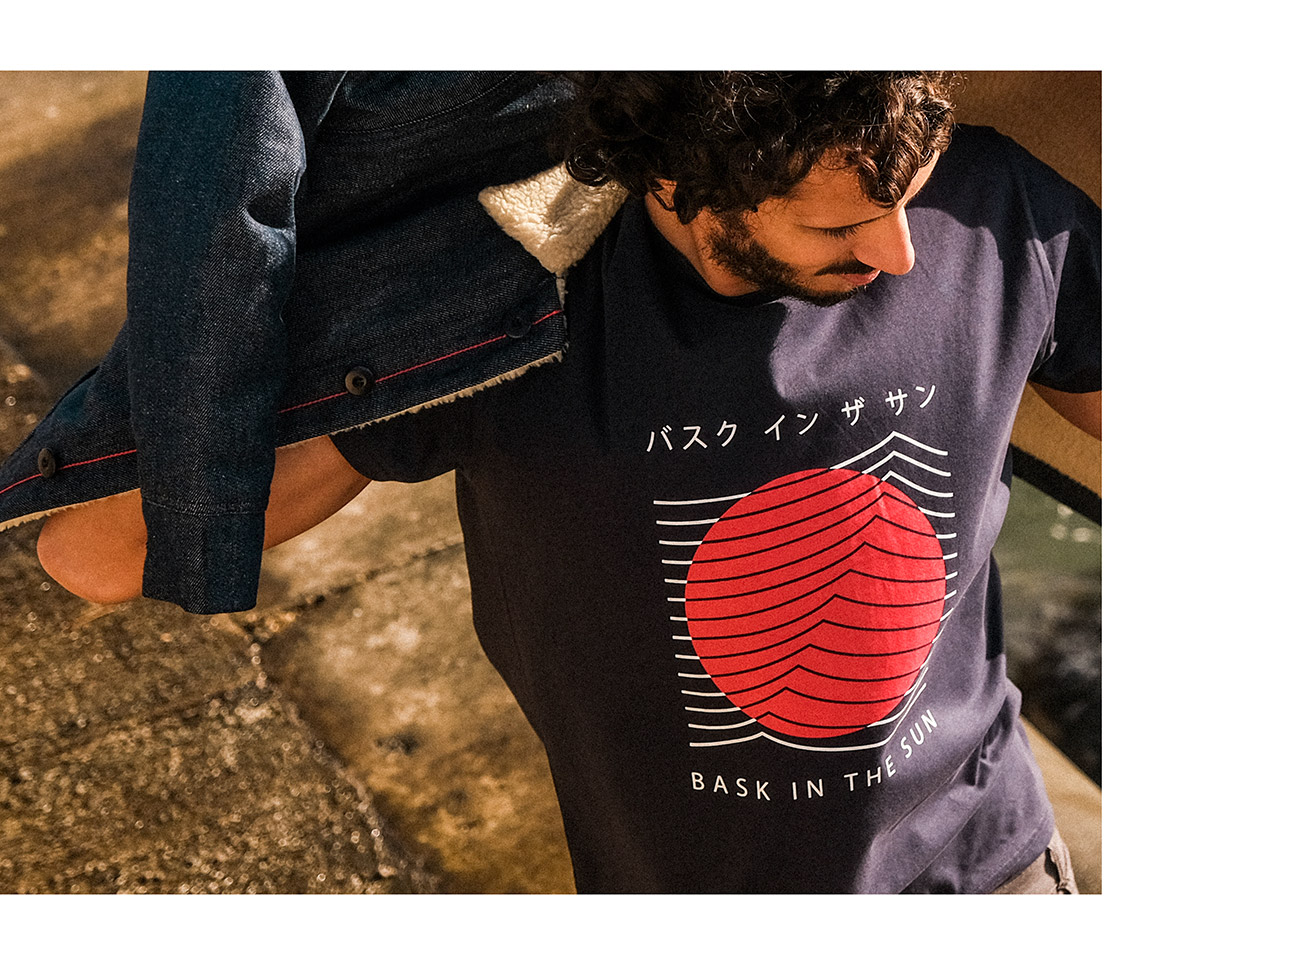 Bask in the Sun, collection automne / hiver 2021